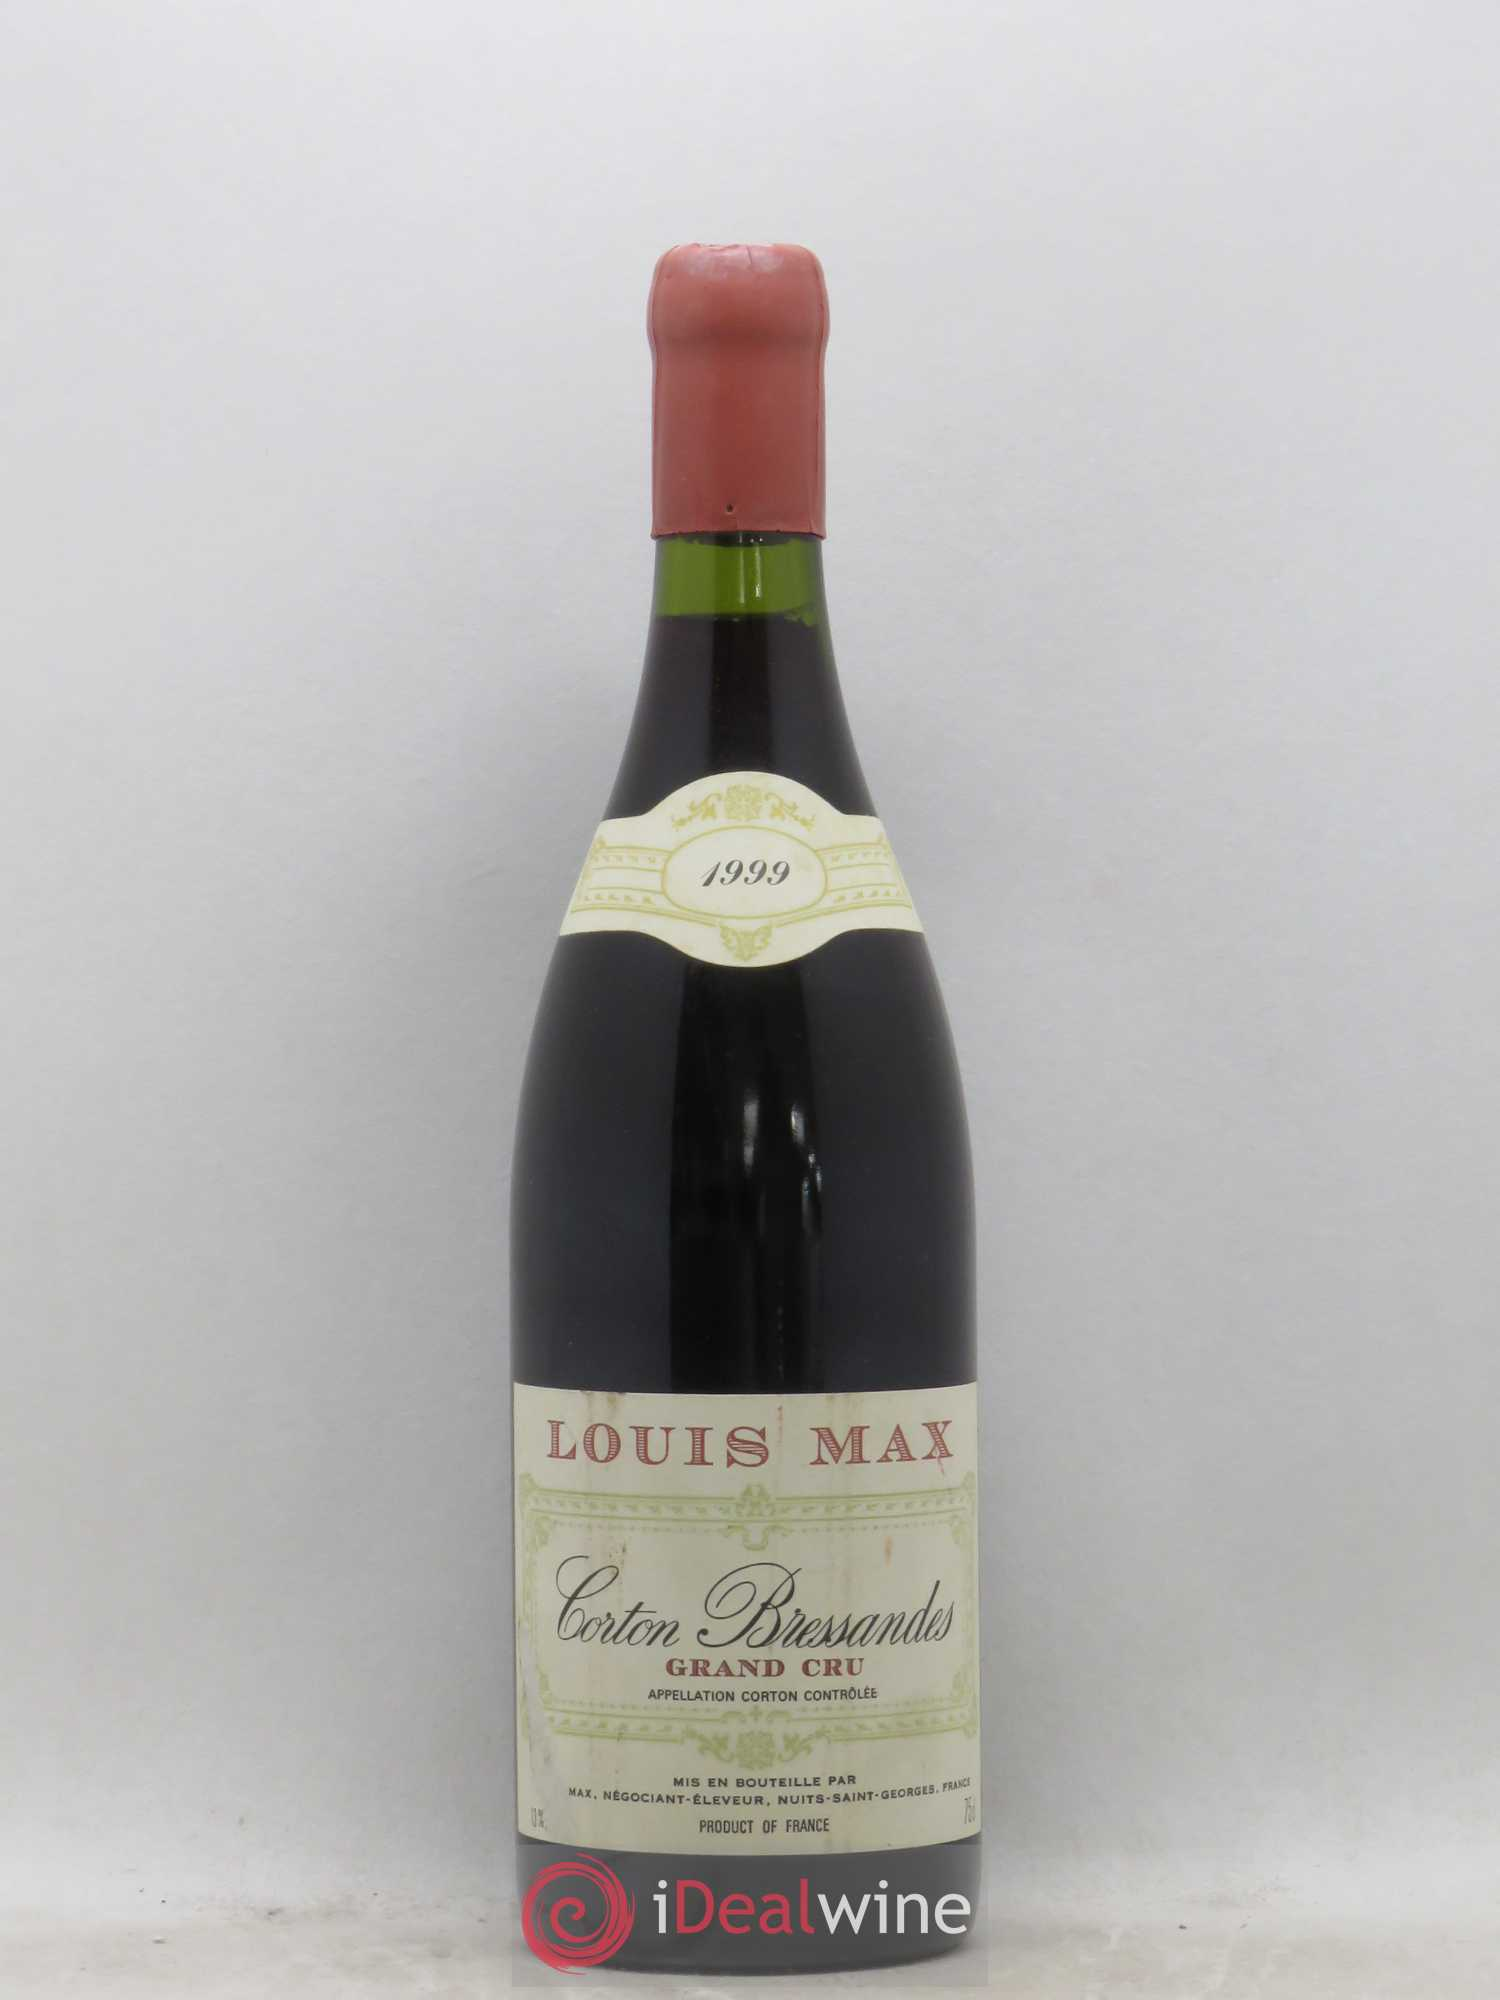 Corton Grand Cru Bressandes Louis Max 1999 - Lot of 1 Bottle